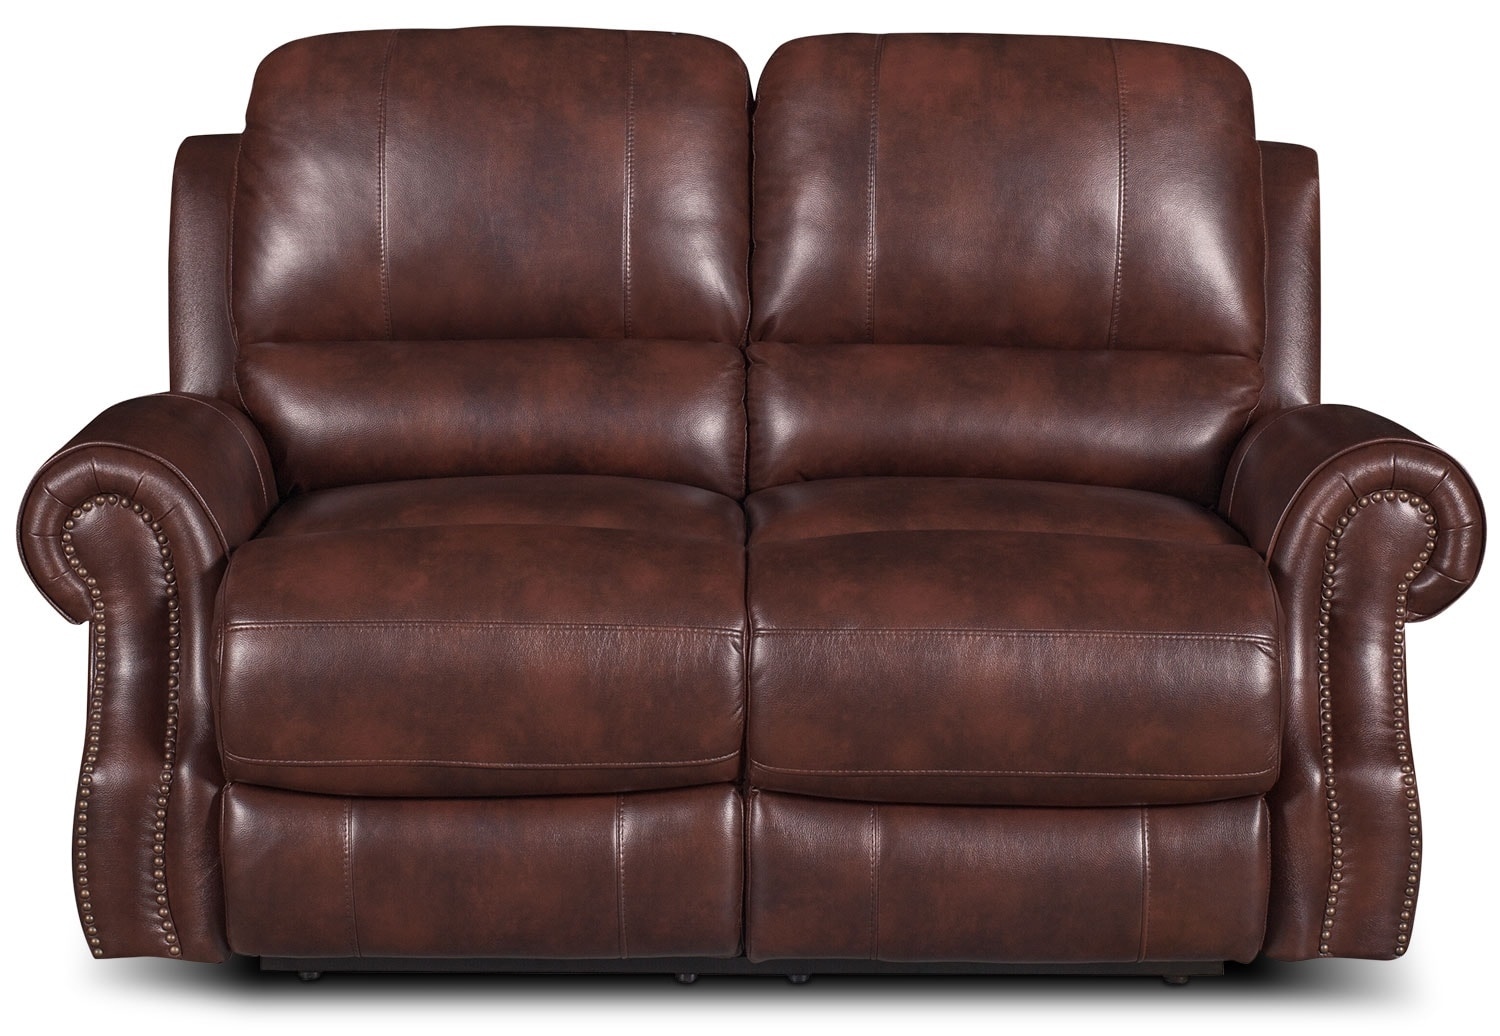 Magnum Leather-Look Fabric Power Reclining Loveseat – Brown